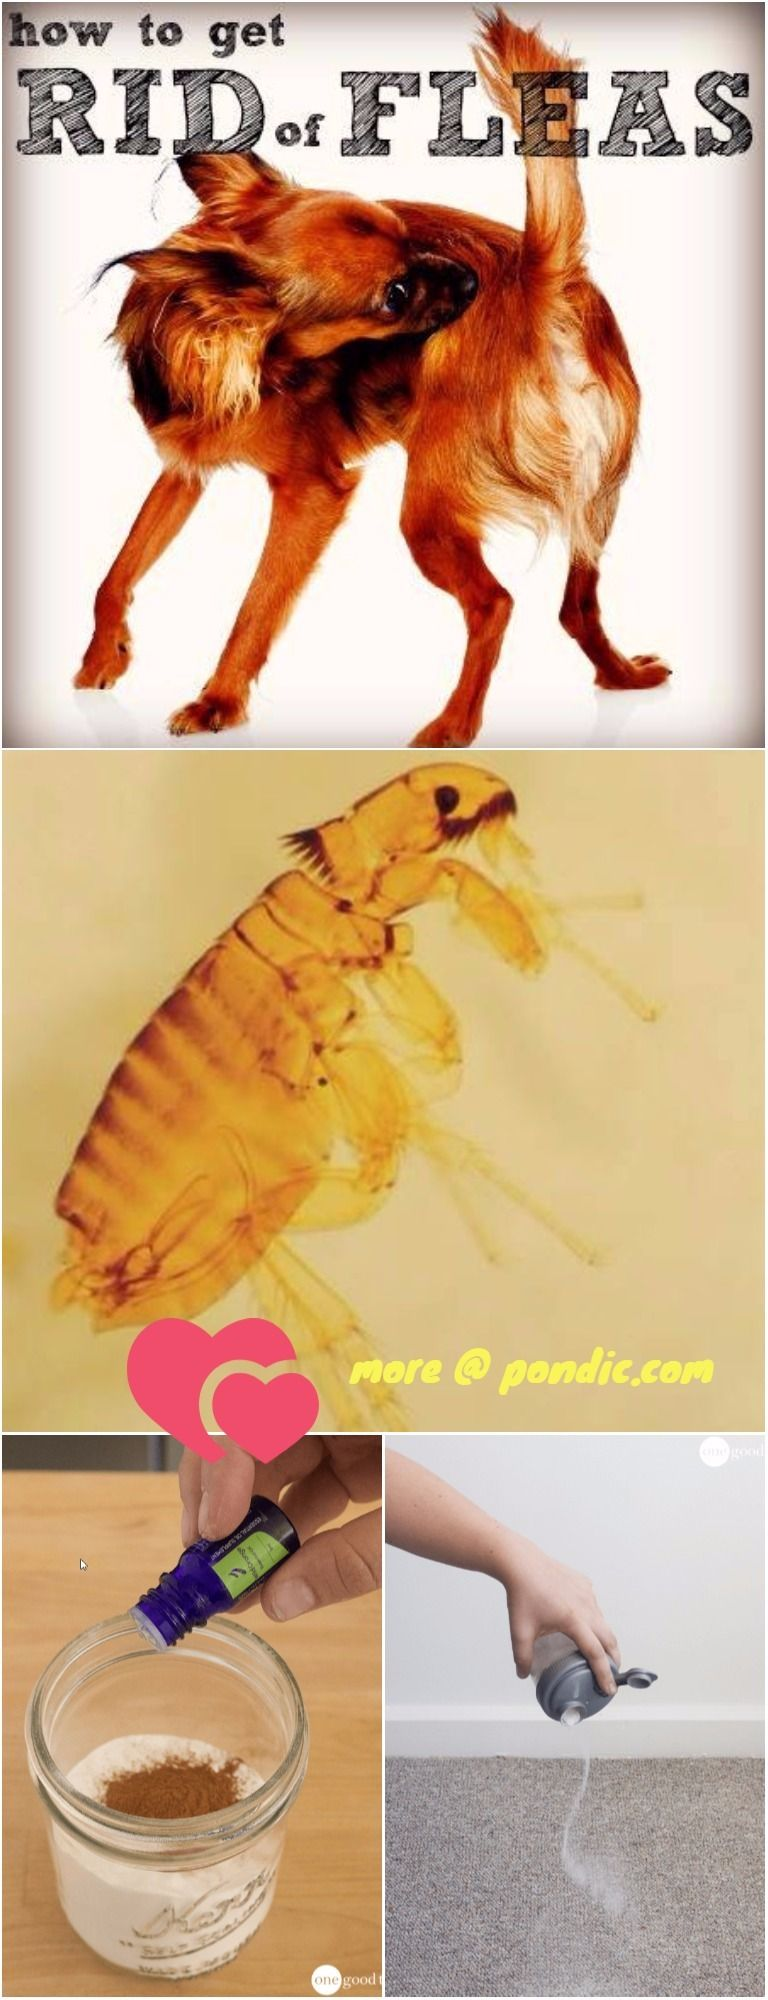 Are You Looking For An Easy Way To Make Your Dogs Or Cats Flea Free You Will Love These Home Remedies To G Home Remedies For Fleas Dog Flea Remedies Cat